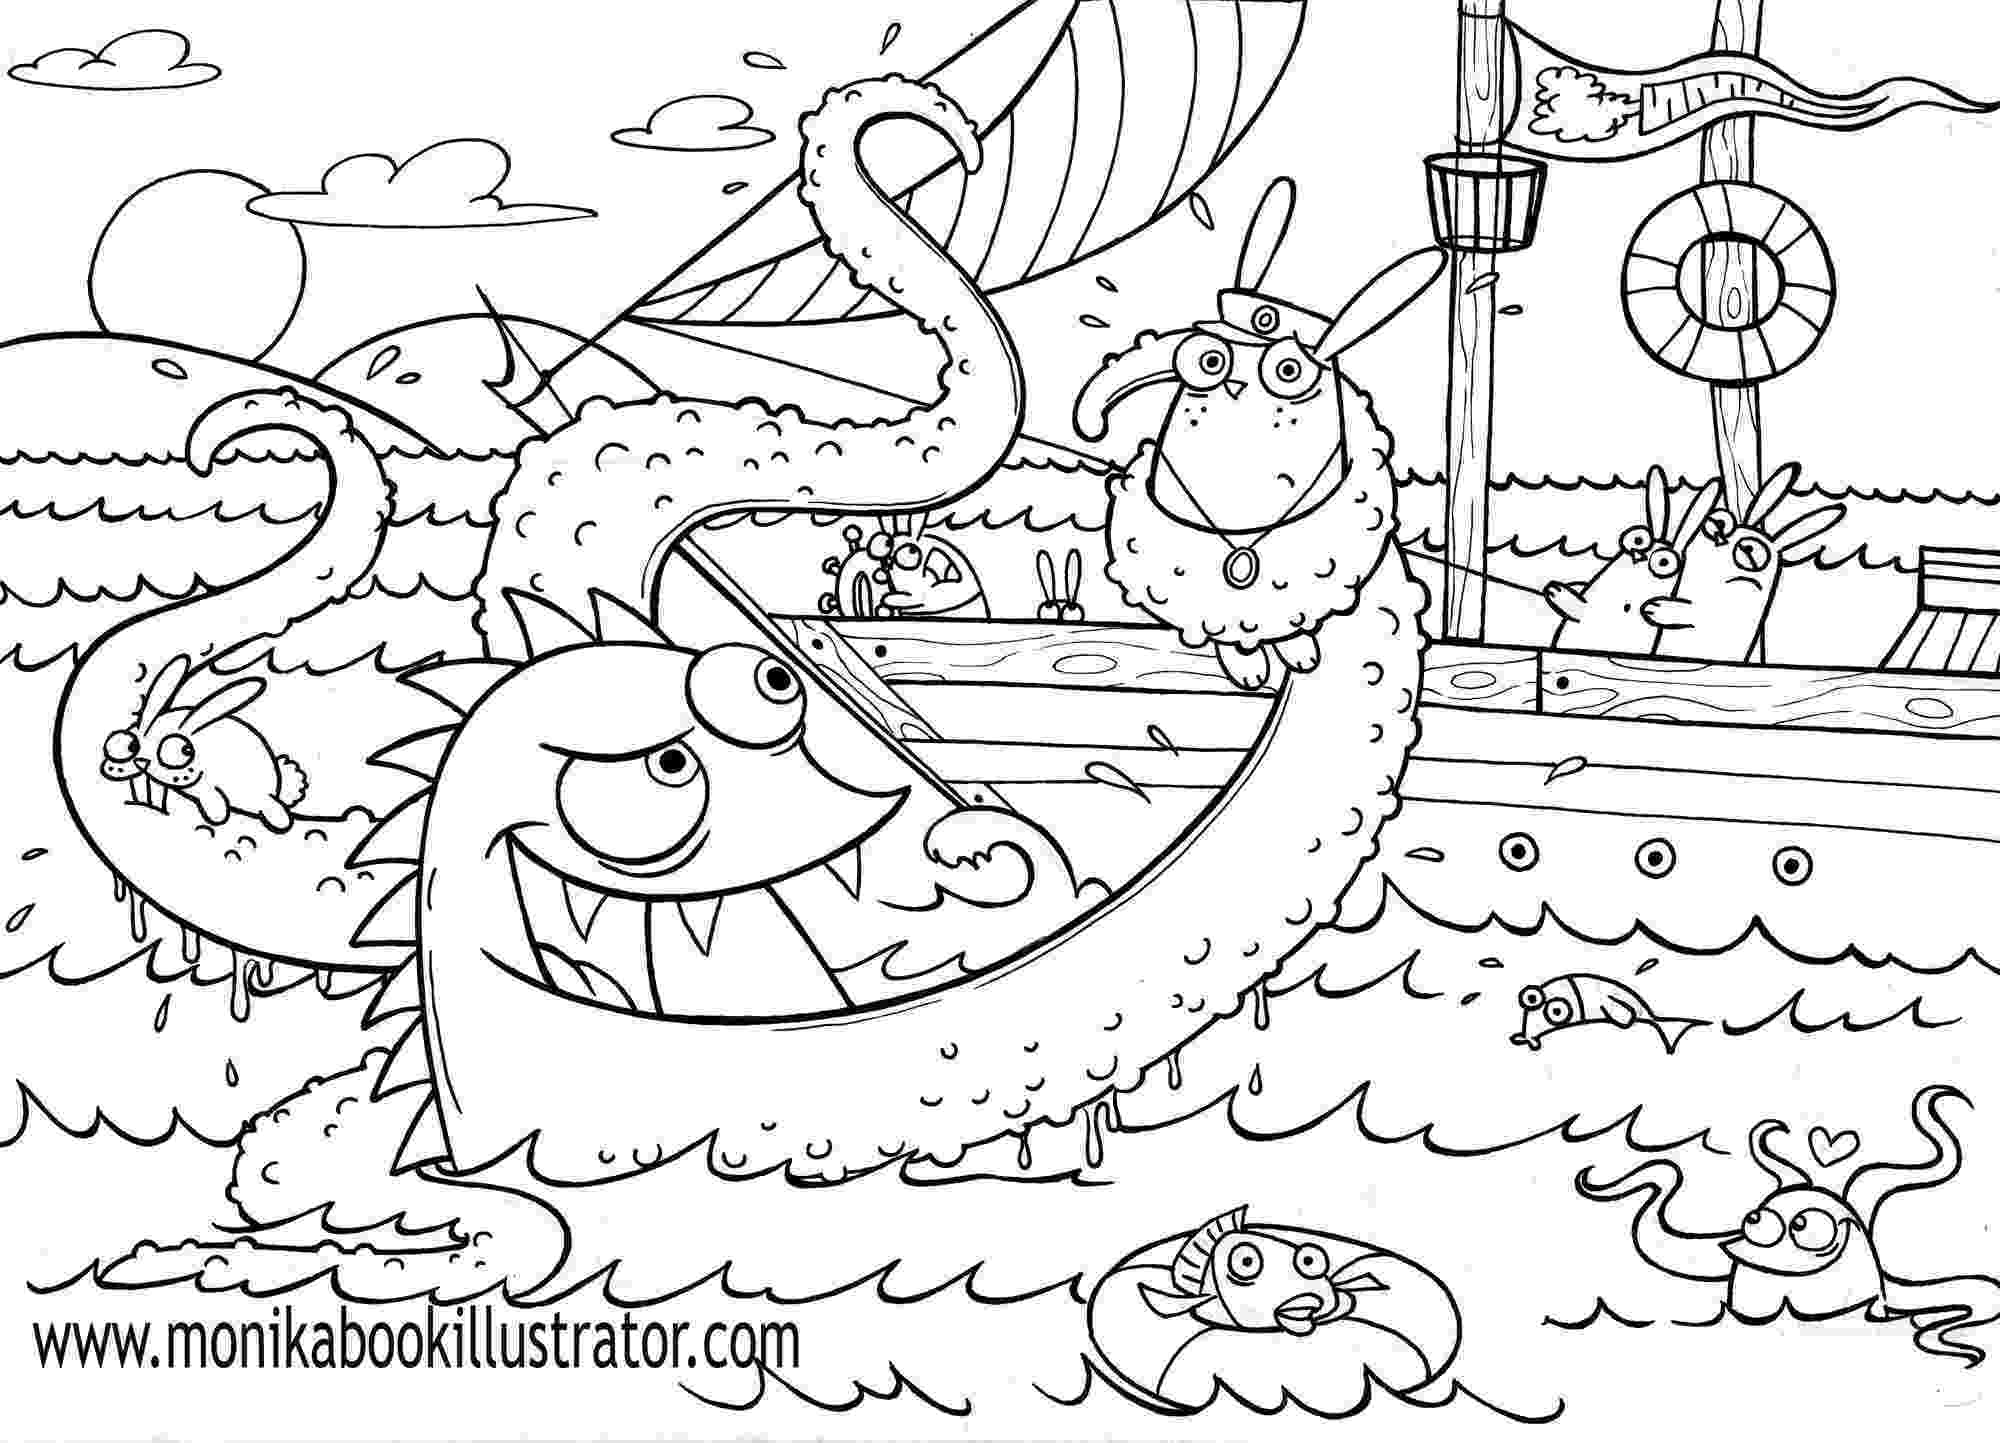 monster coloring printable moshi monsters coloring pages for kids cool2bkids monster coloring